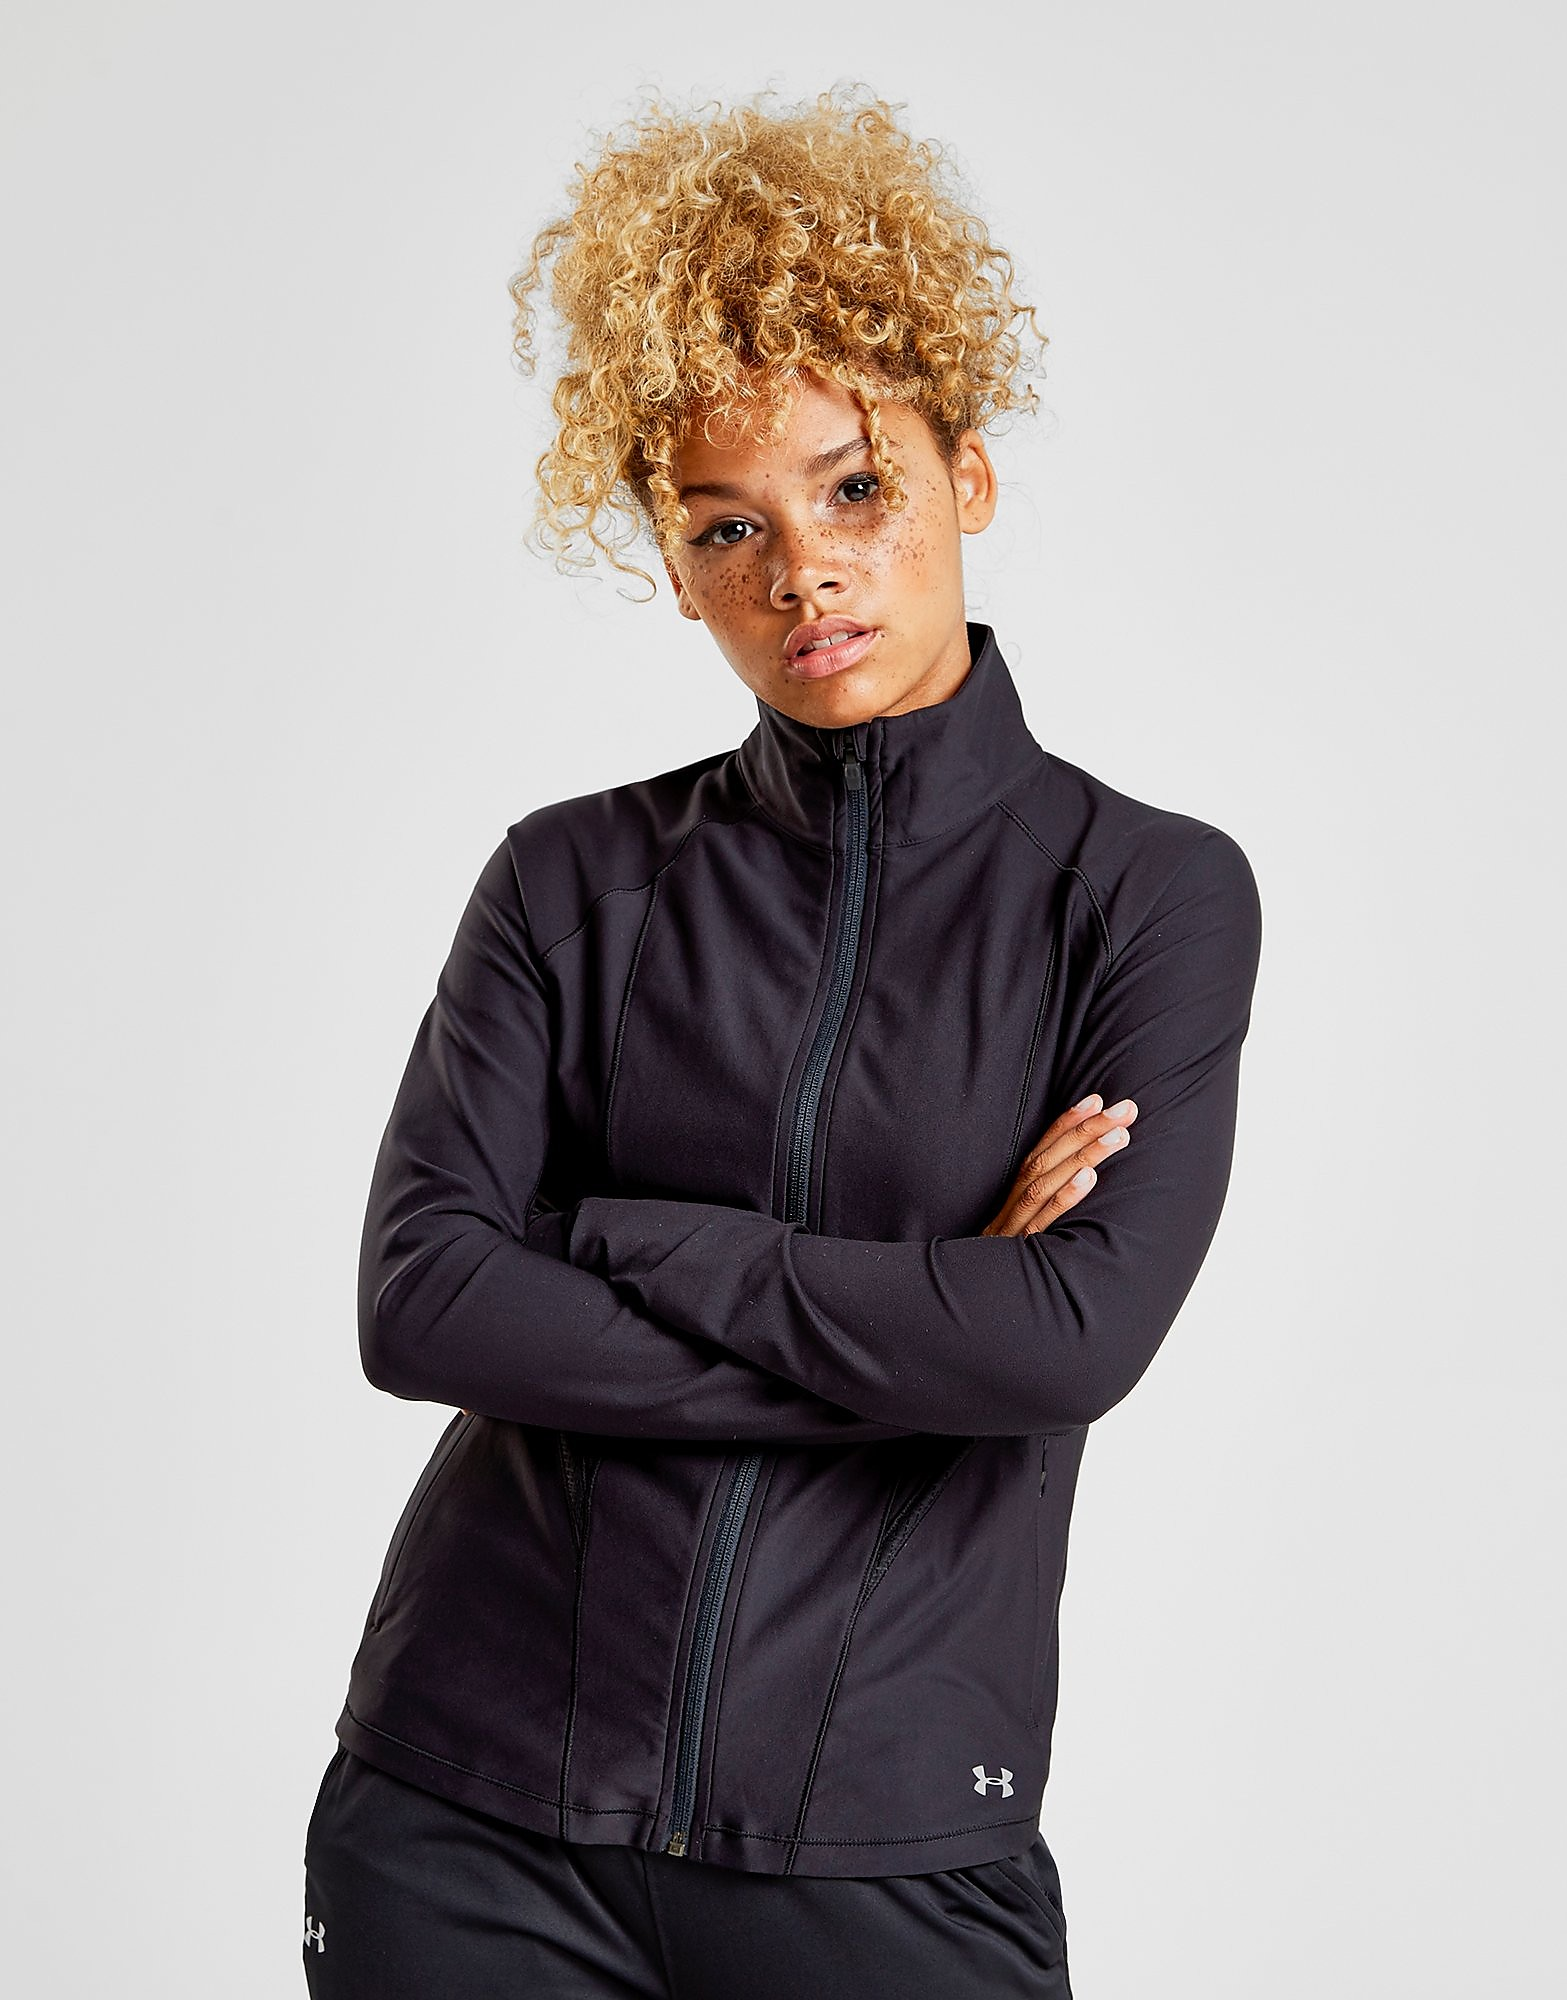 Under Armour Balance Full Zip Track Top